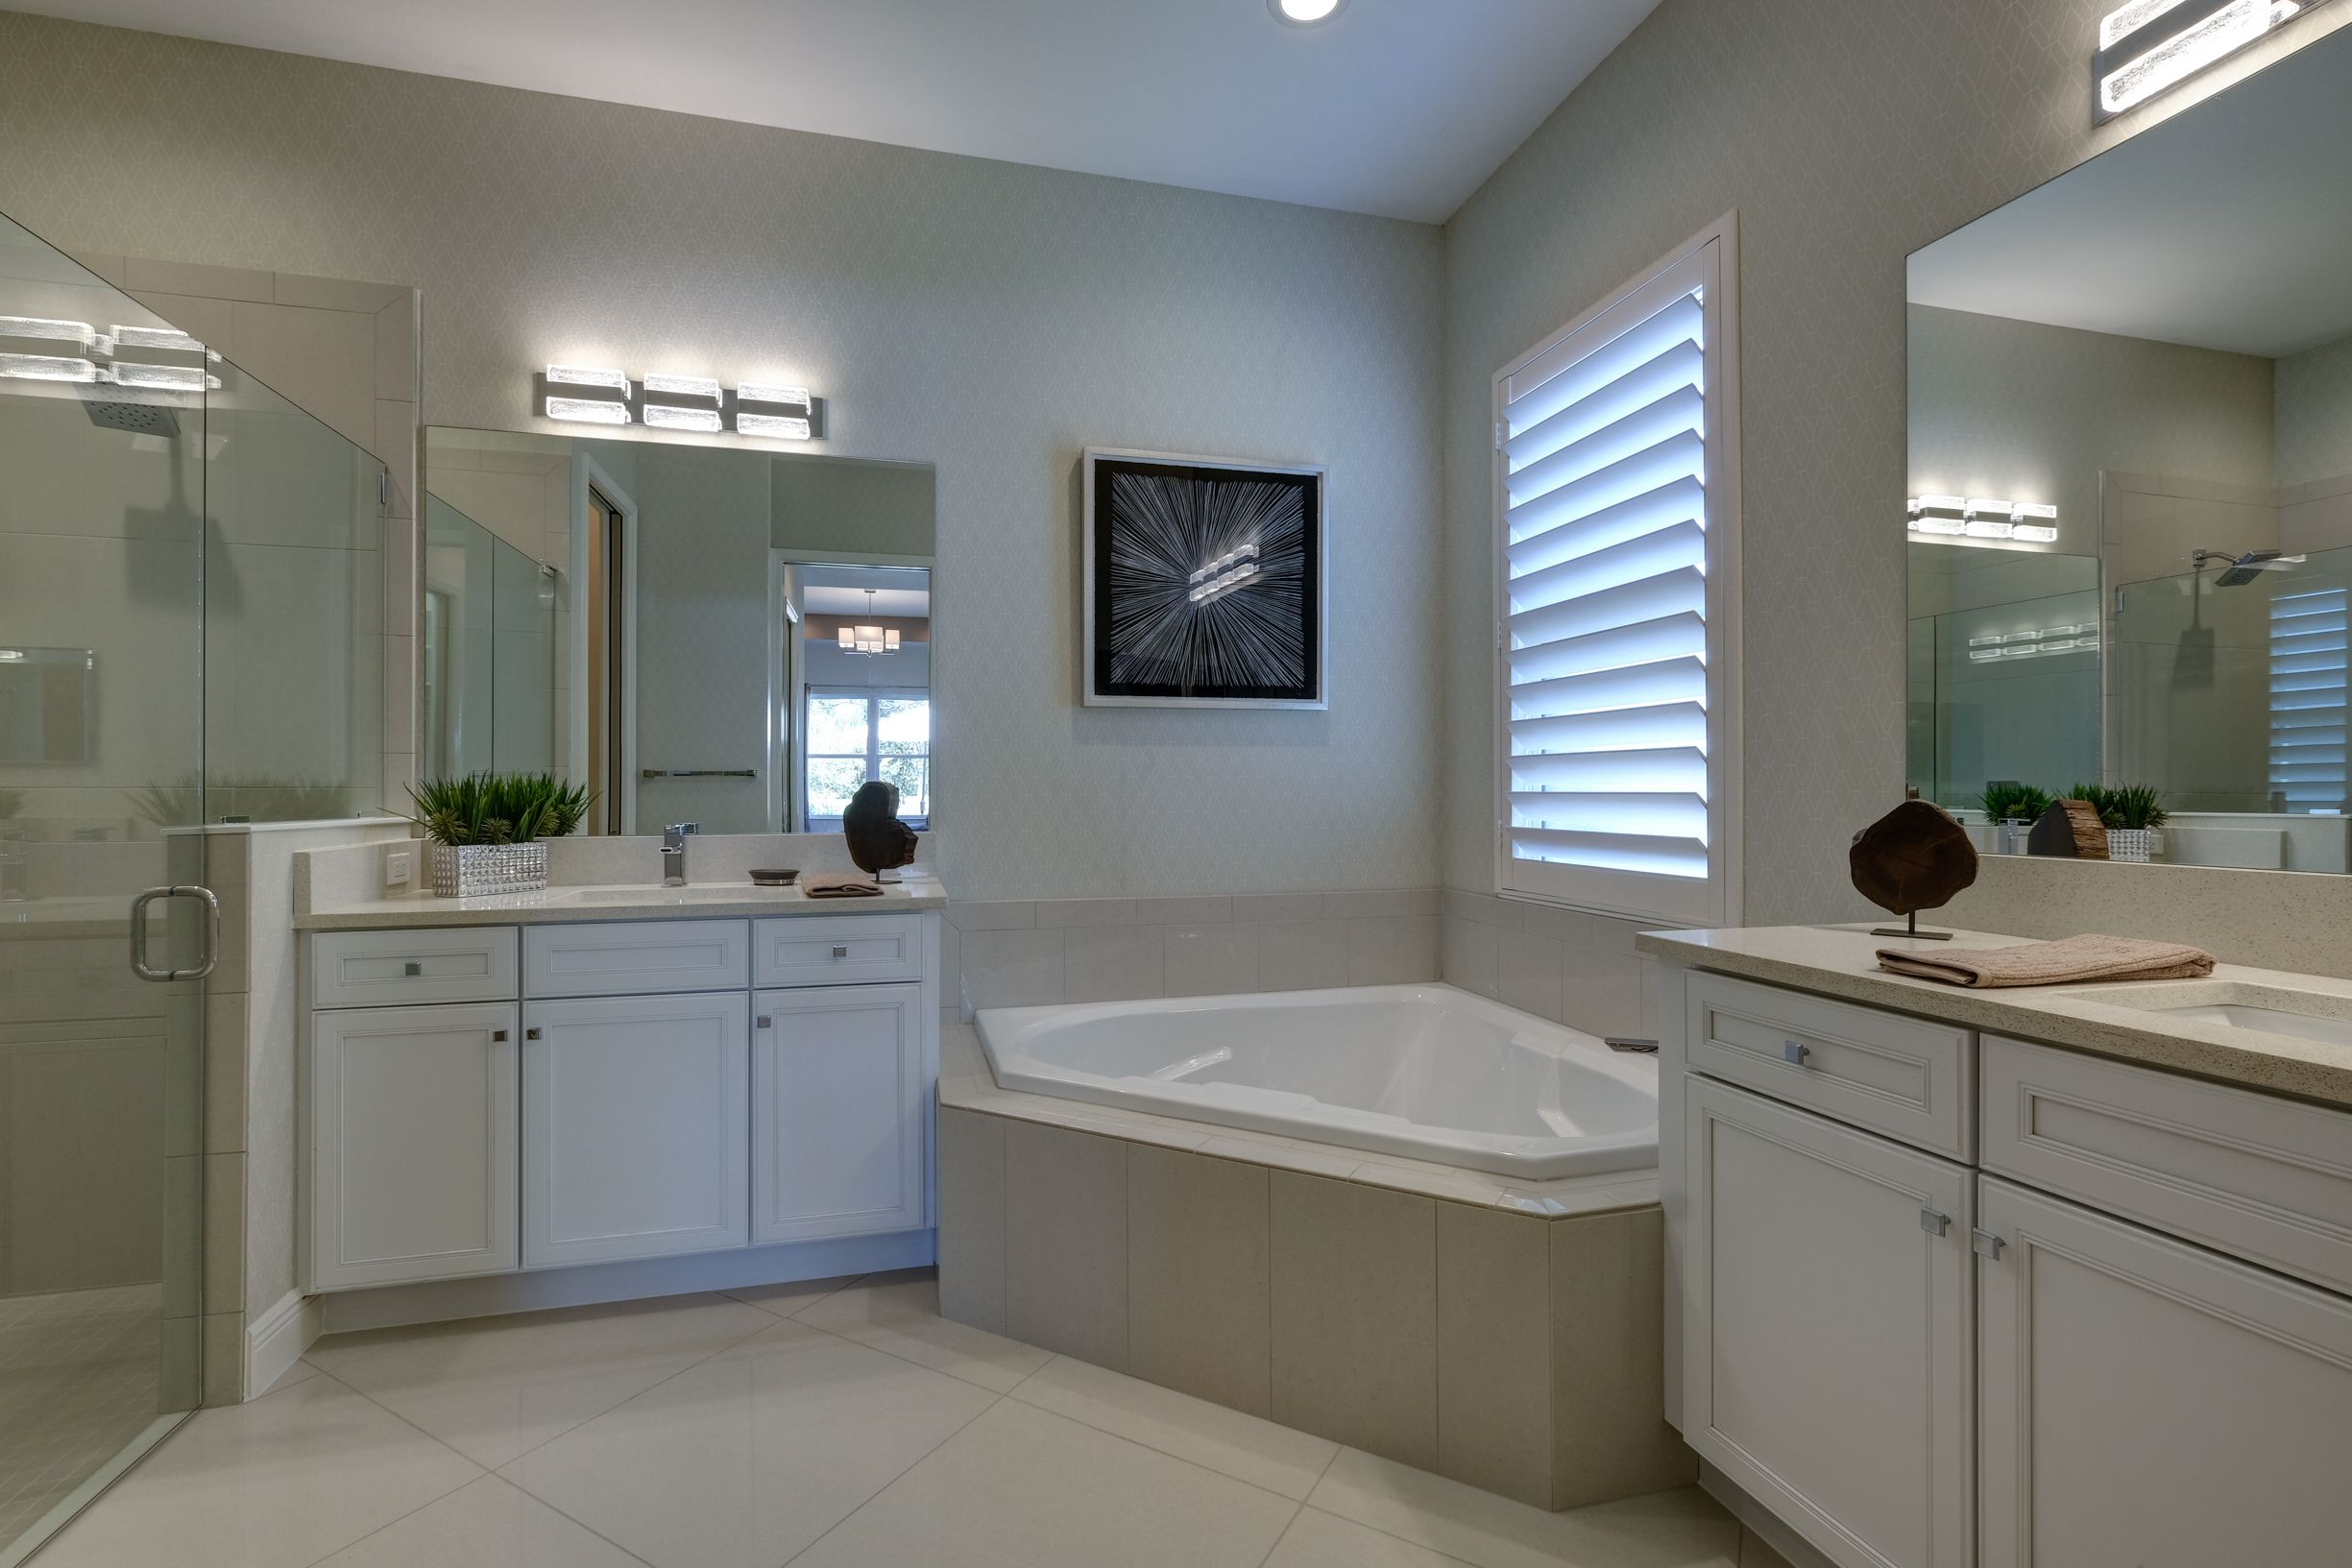 Bathroom featured in the Grenada By Medallion Home in Sarasota-Bradenton, FL